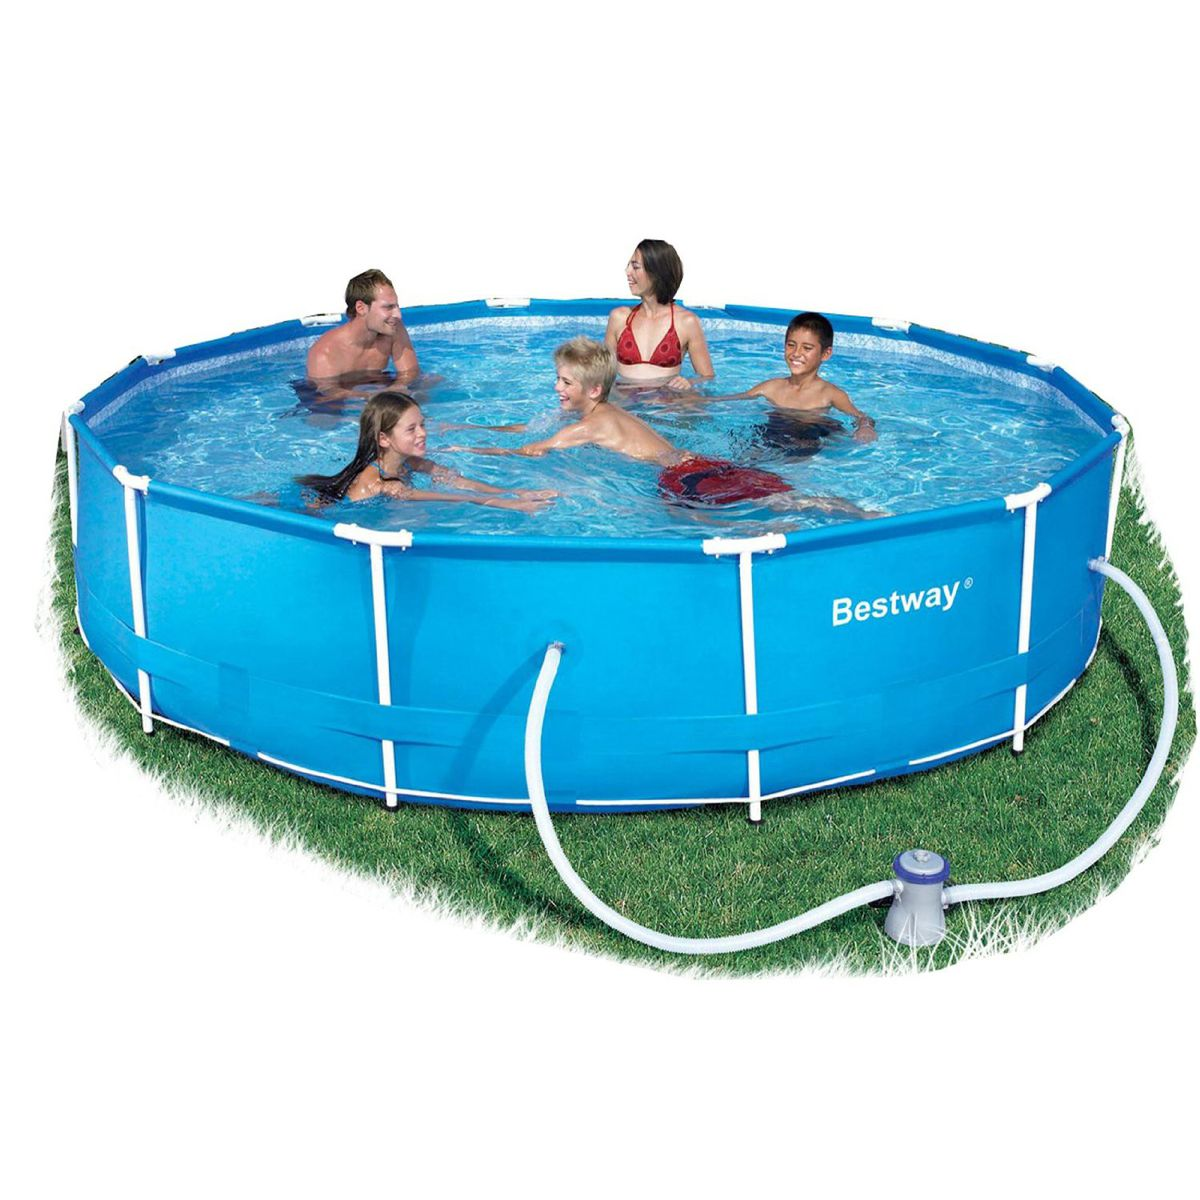 Bestway Pools Cape Town Bestway 6 4kl Steel Pro Frame Pool Set Buy Online In